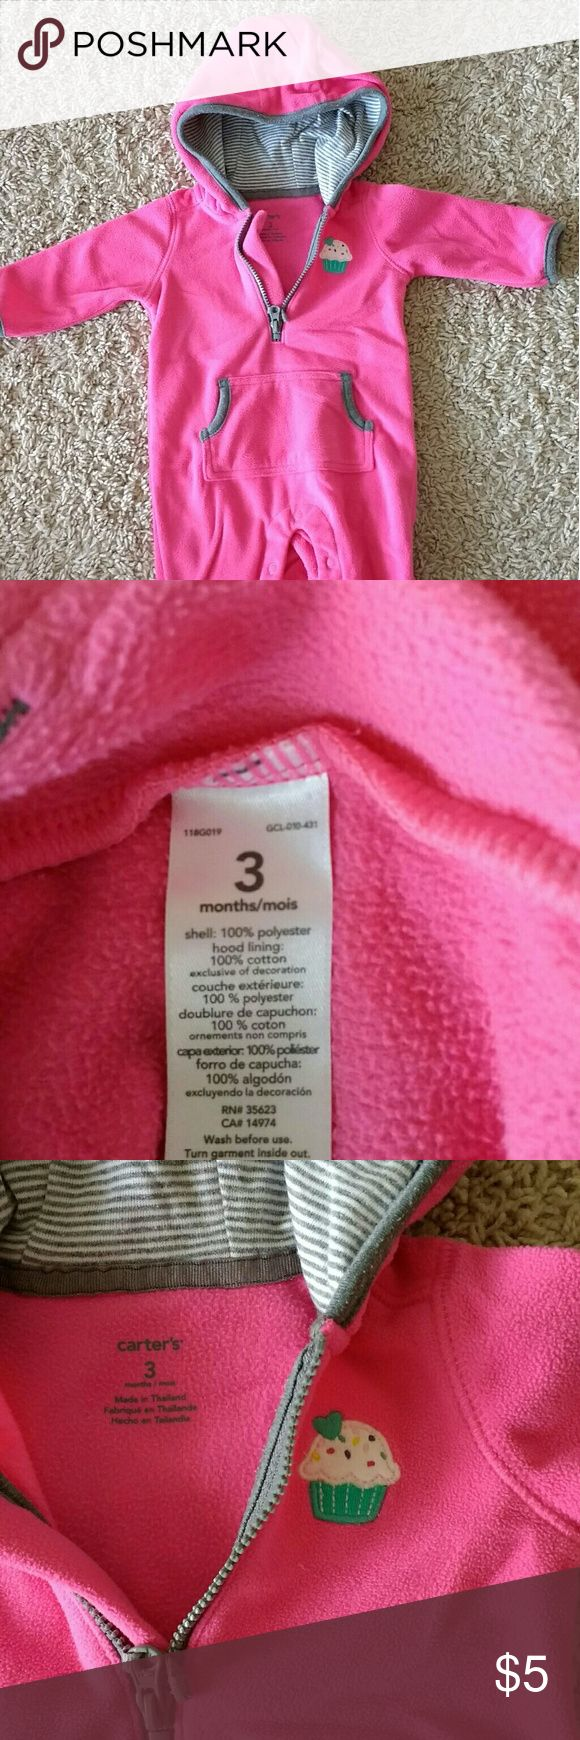 Carter's baby girl onesie 0-3 months Carter's baby girl onesie 0-3 months Bright pink color  No damage or stains, only normal wear Pet-free smoke-free home Carter's One Pieces